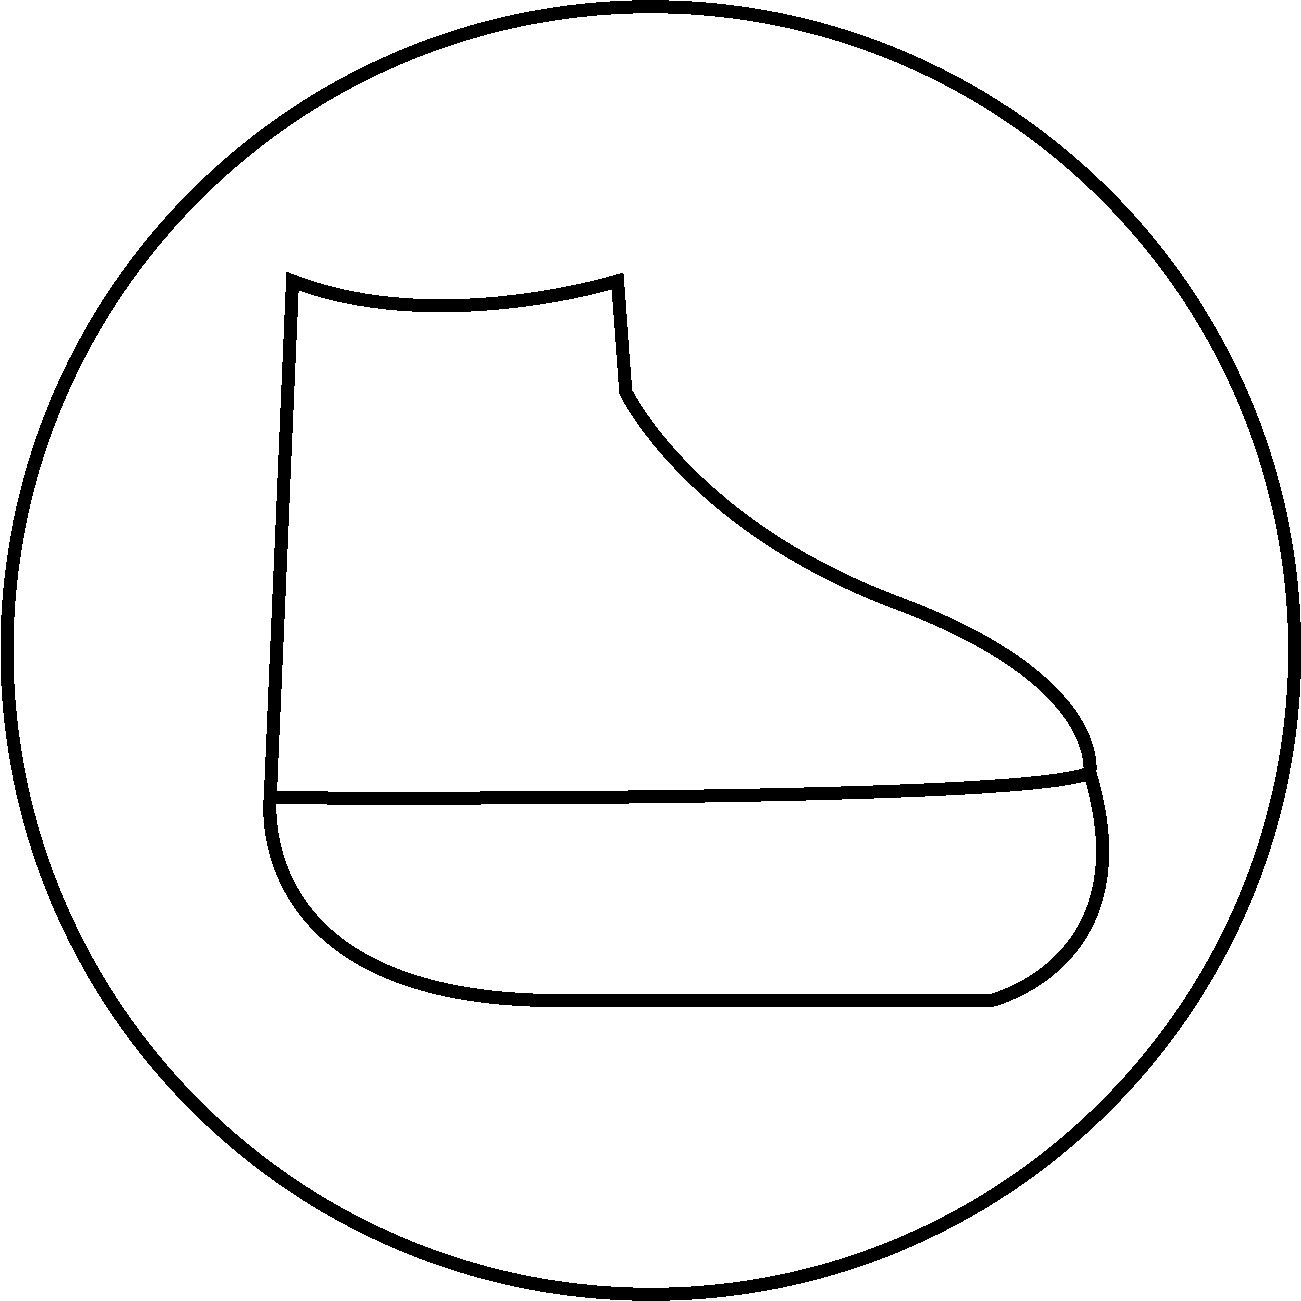 drizzledrybootsicons.png